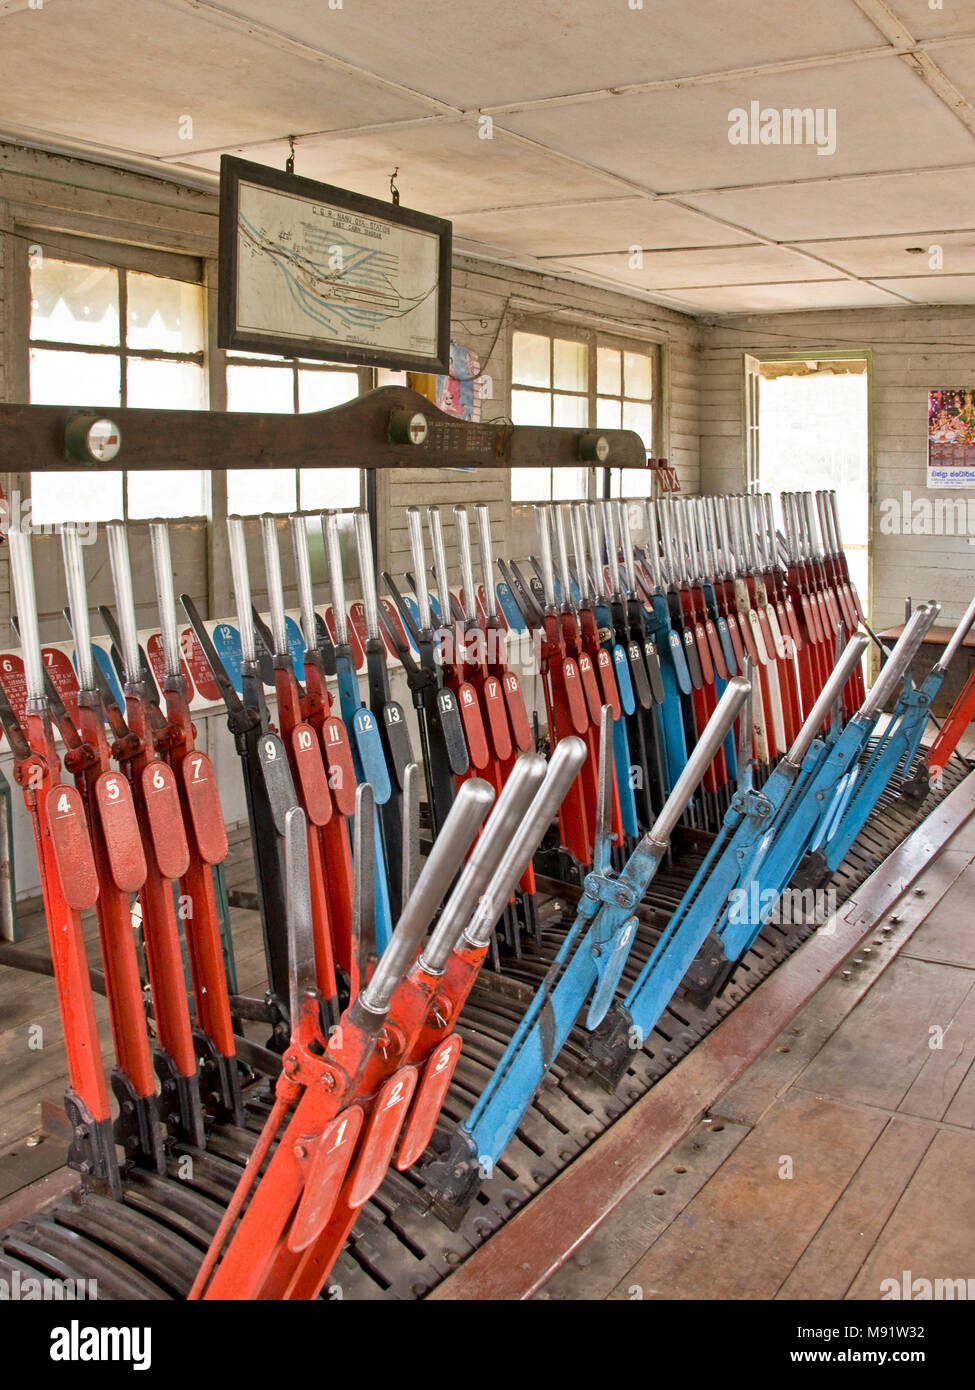 Inside the signal box at Nanu Oya railway station, Sri Lanka showing the levers used to switch the tracks. - Stock Image